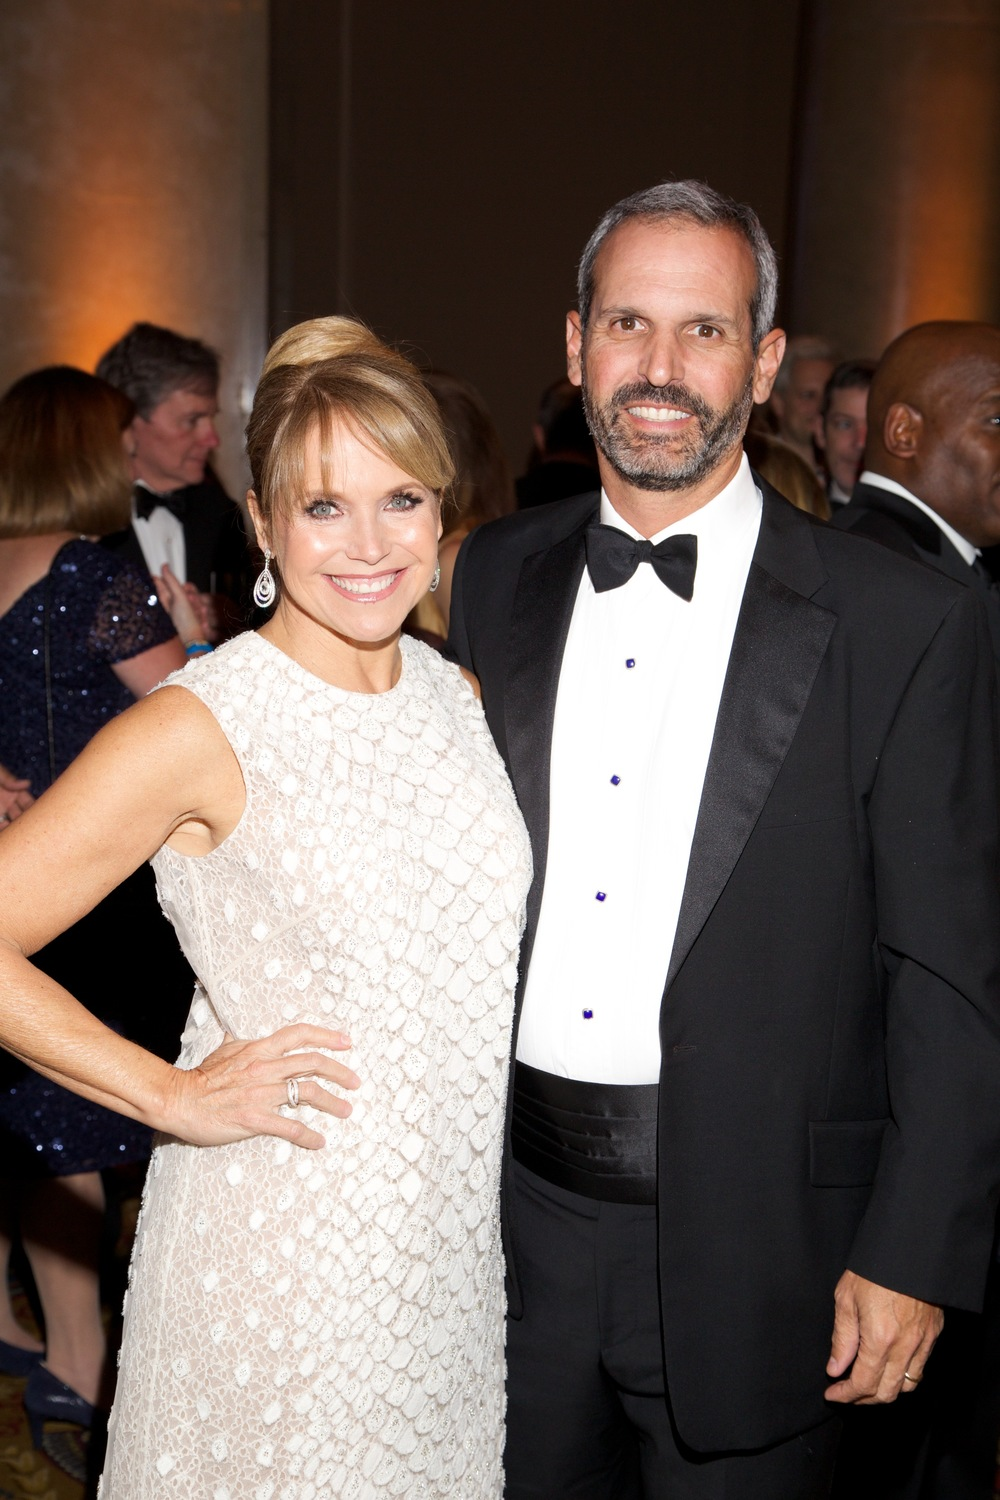 Katie Couric and John Molner ©2015 Julie Skarratt Photography, Inc./U.S. Fund for UNICEF